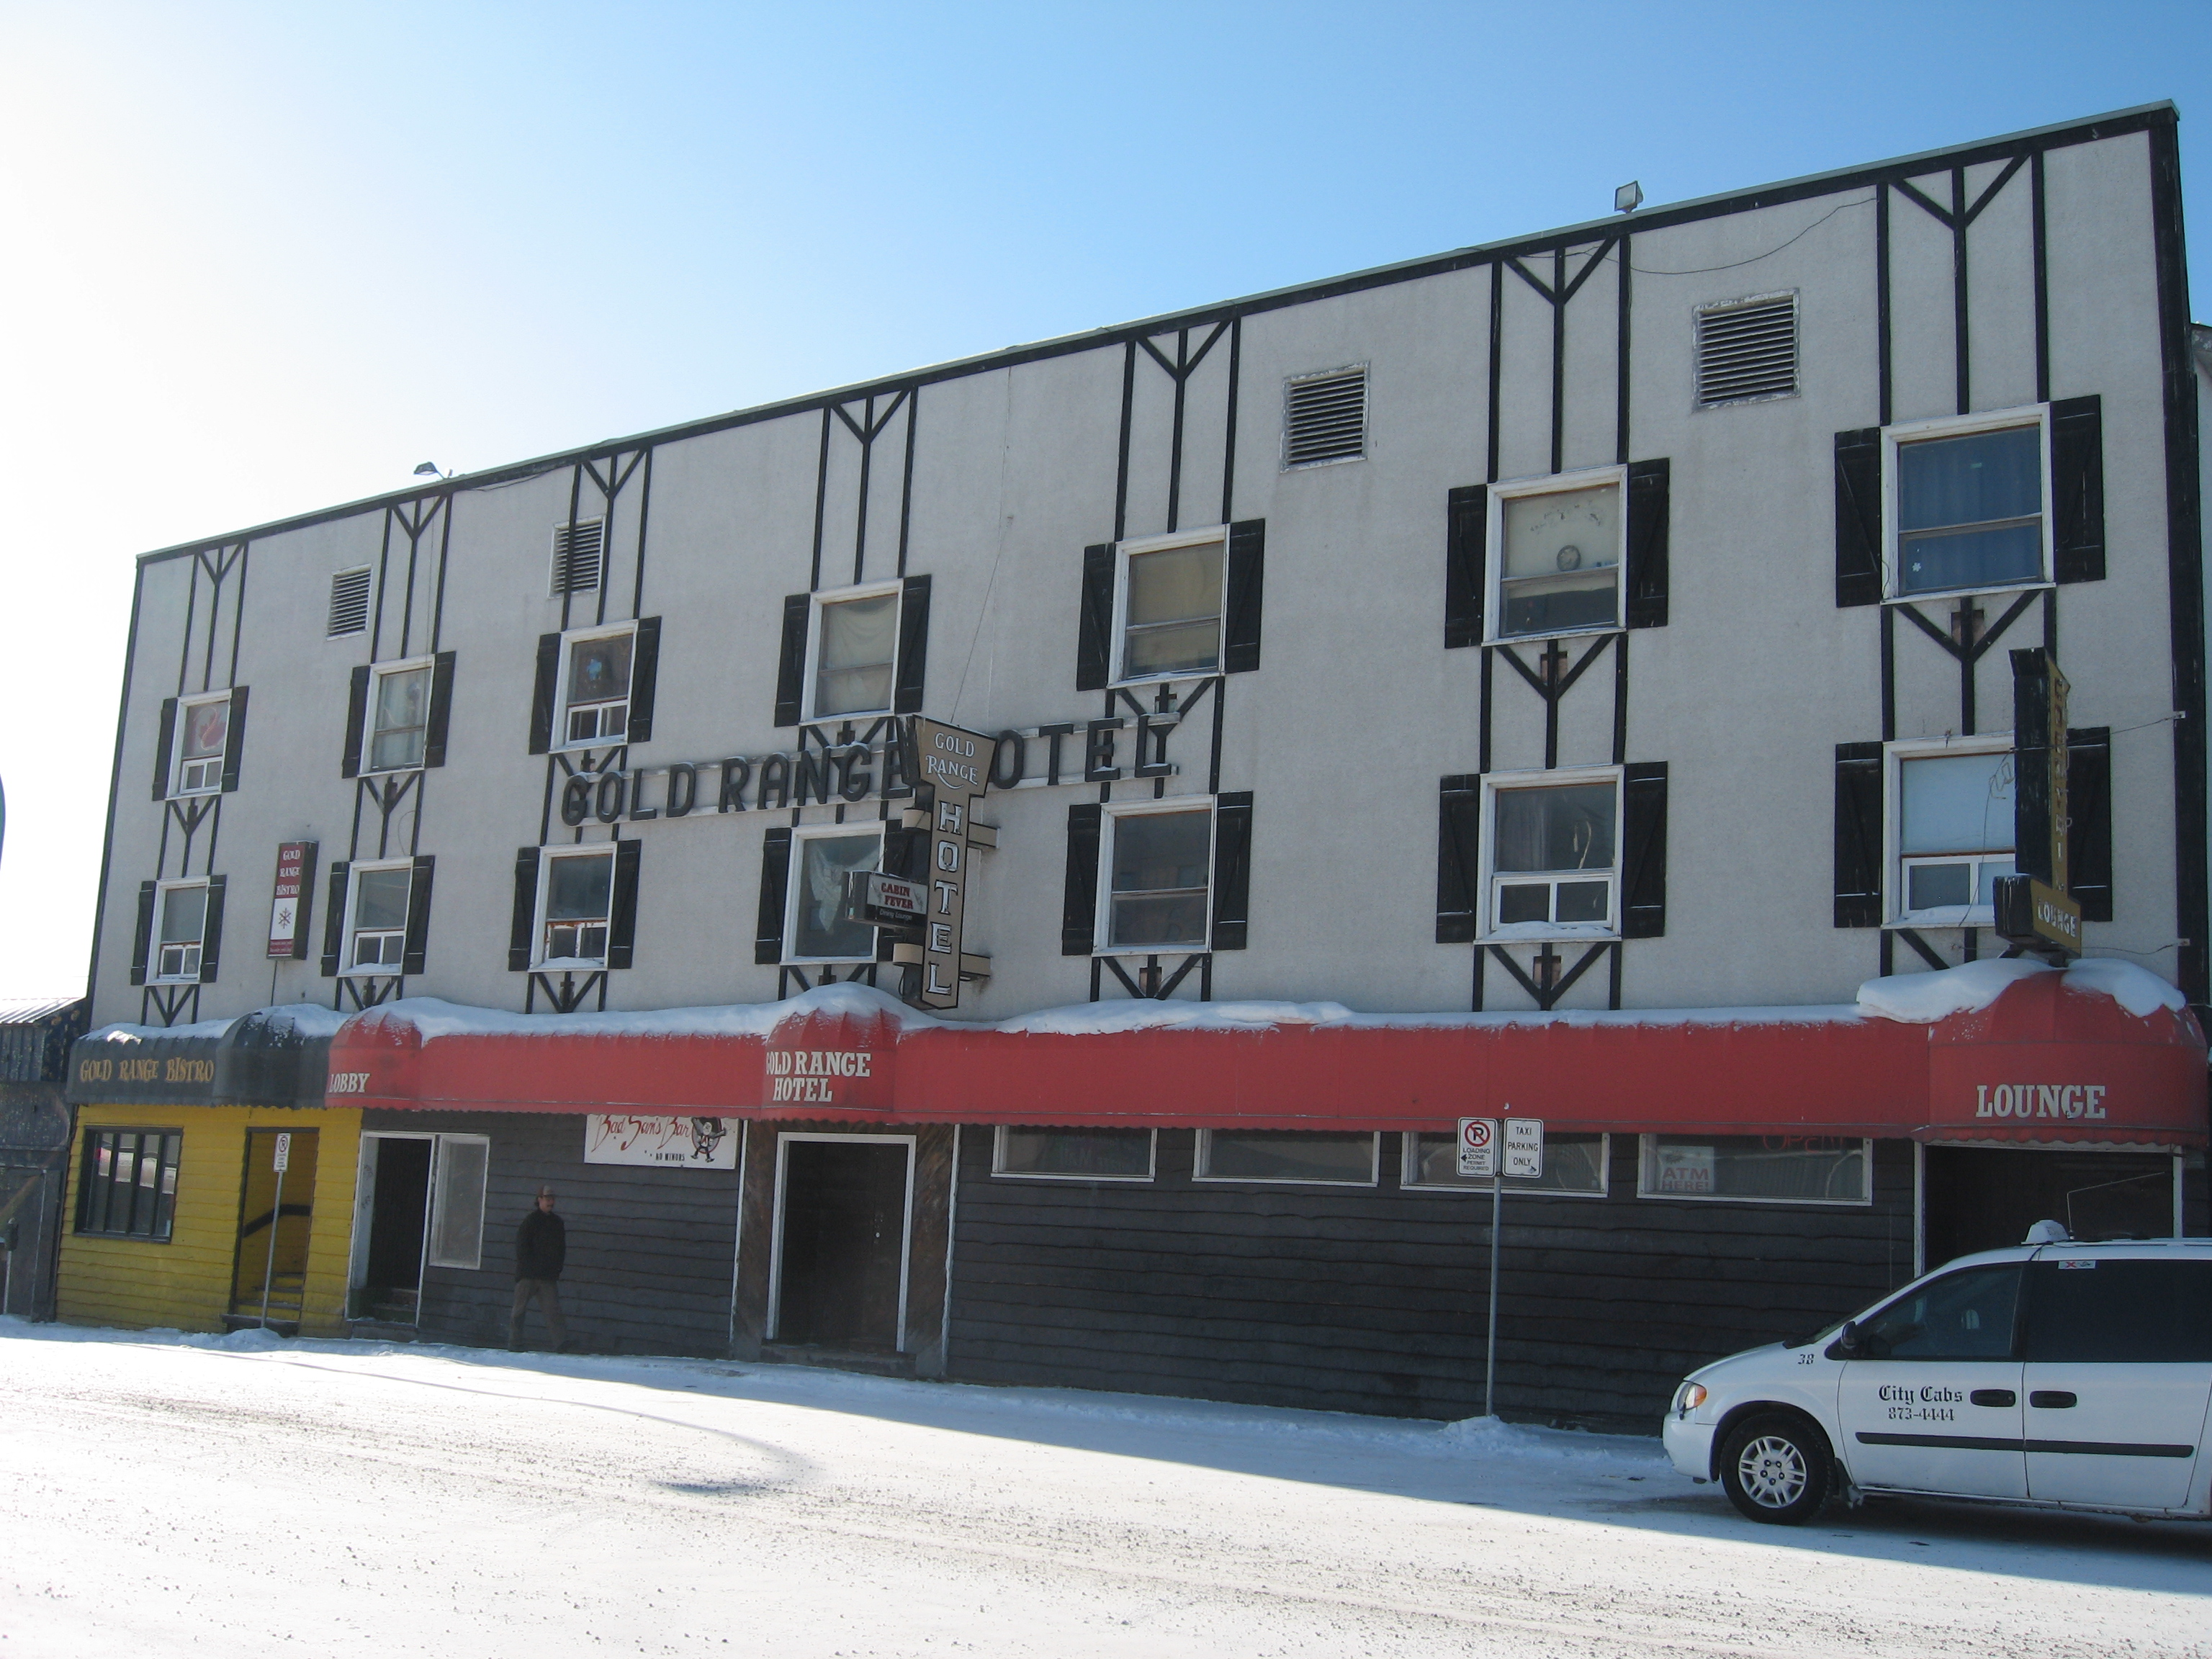 Download the full-sized image of Gold Range Hotel, Yellowknife, Northwest Territories -- photograph